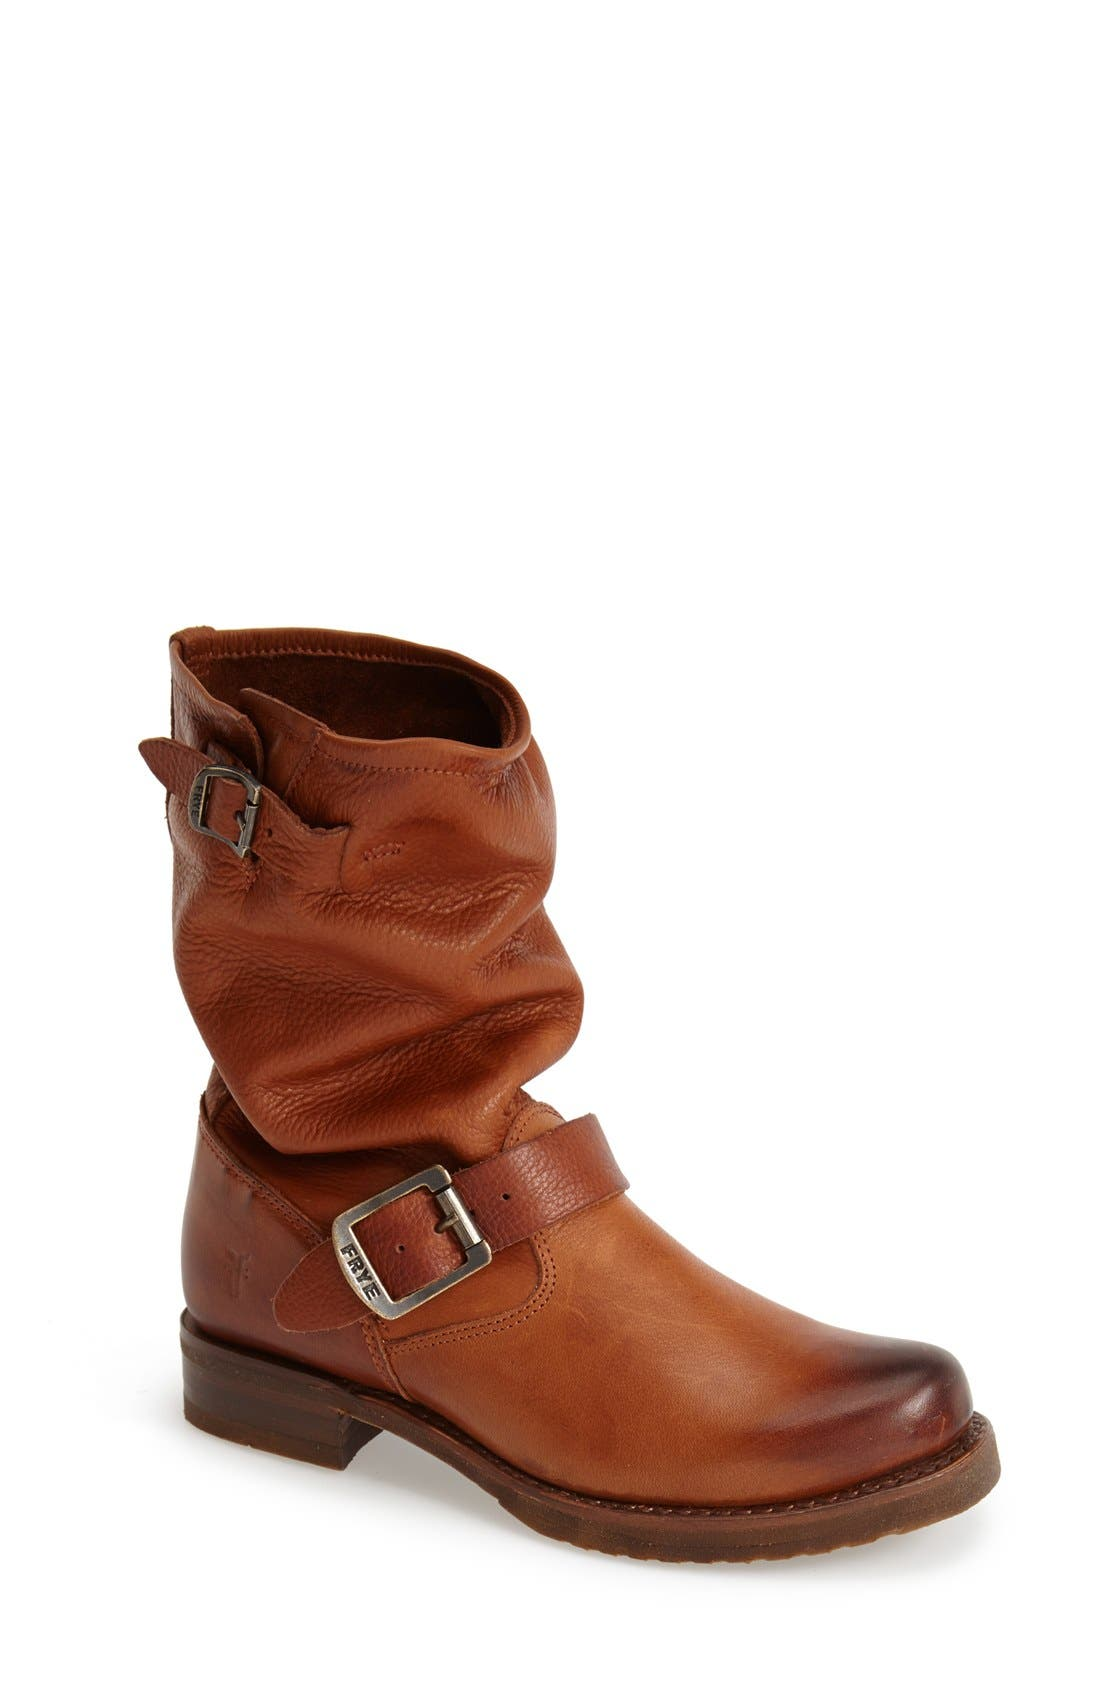 Main Image - Frye 'Veronica Shortie' Slouchy Boot (Women)